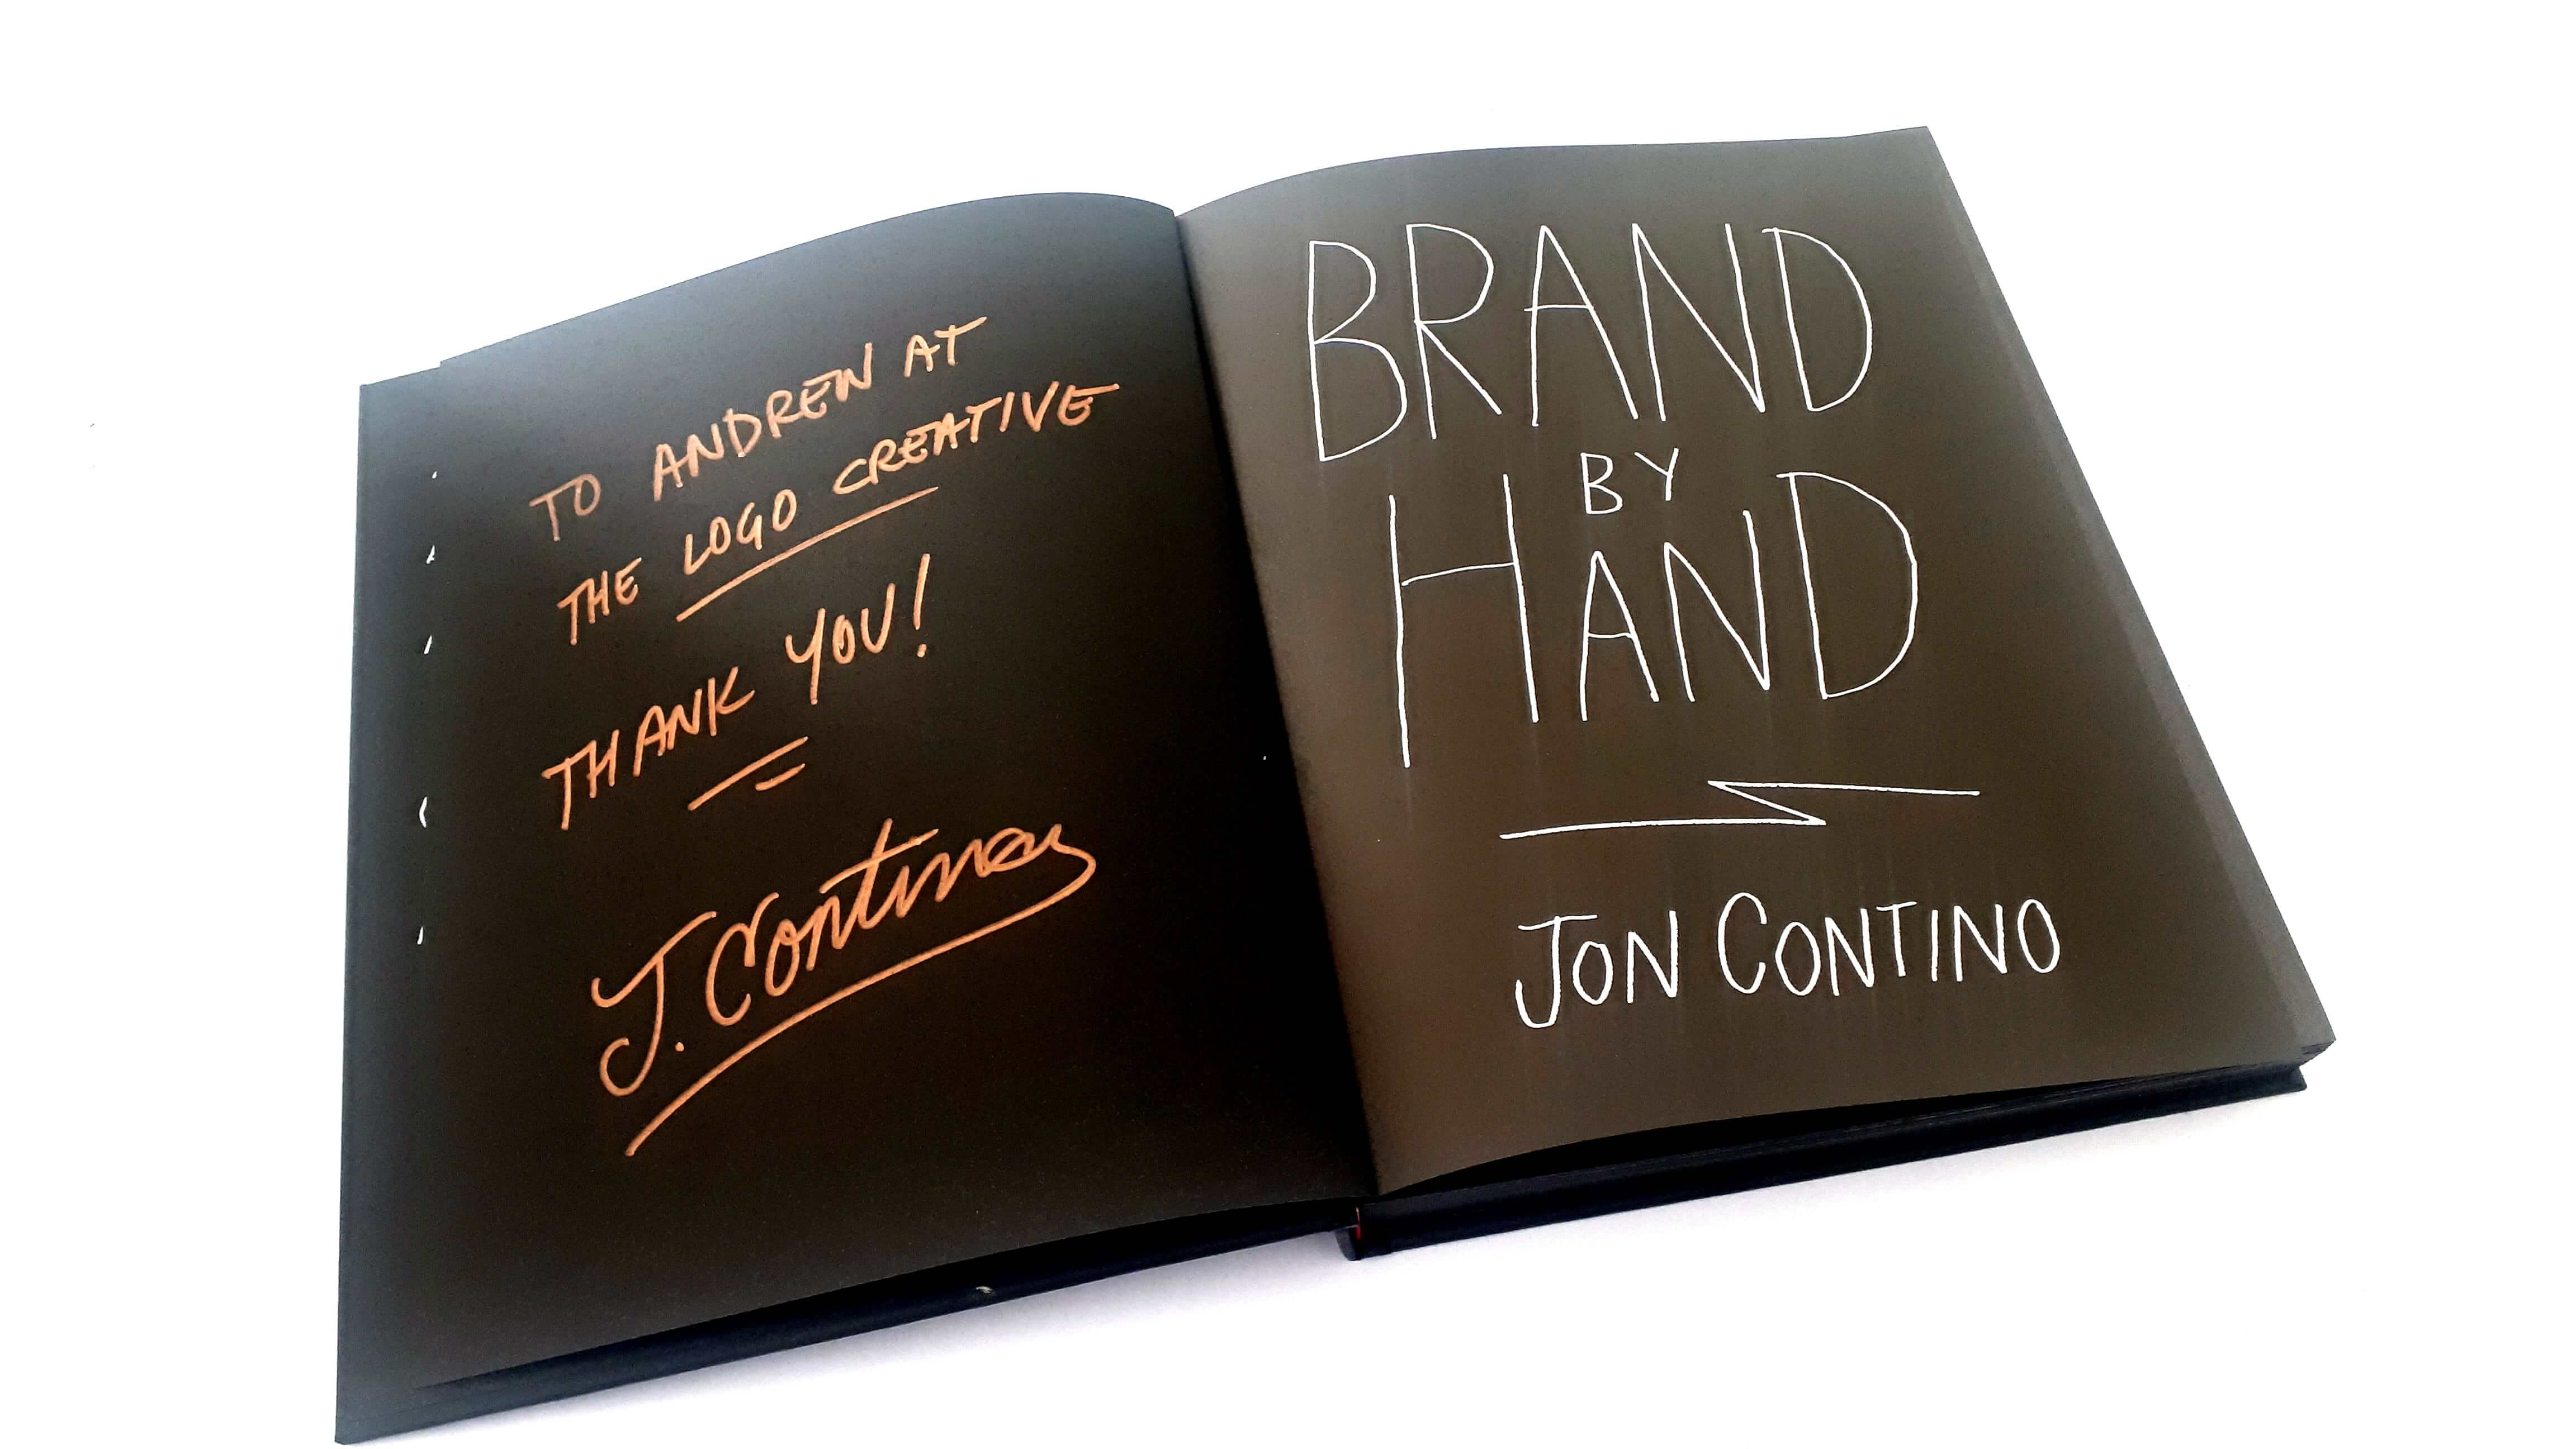 Brand By Hand By Jon Contino - Book Review